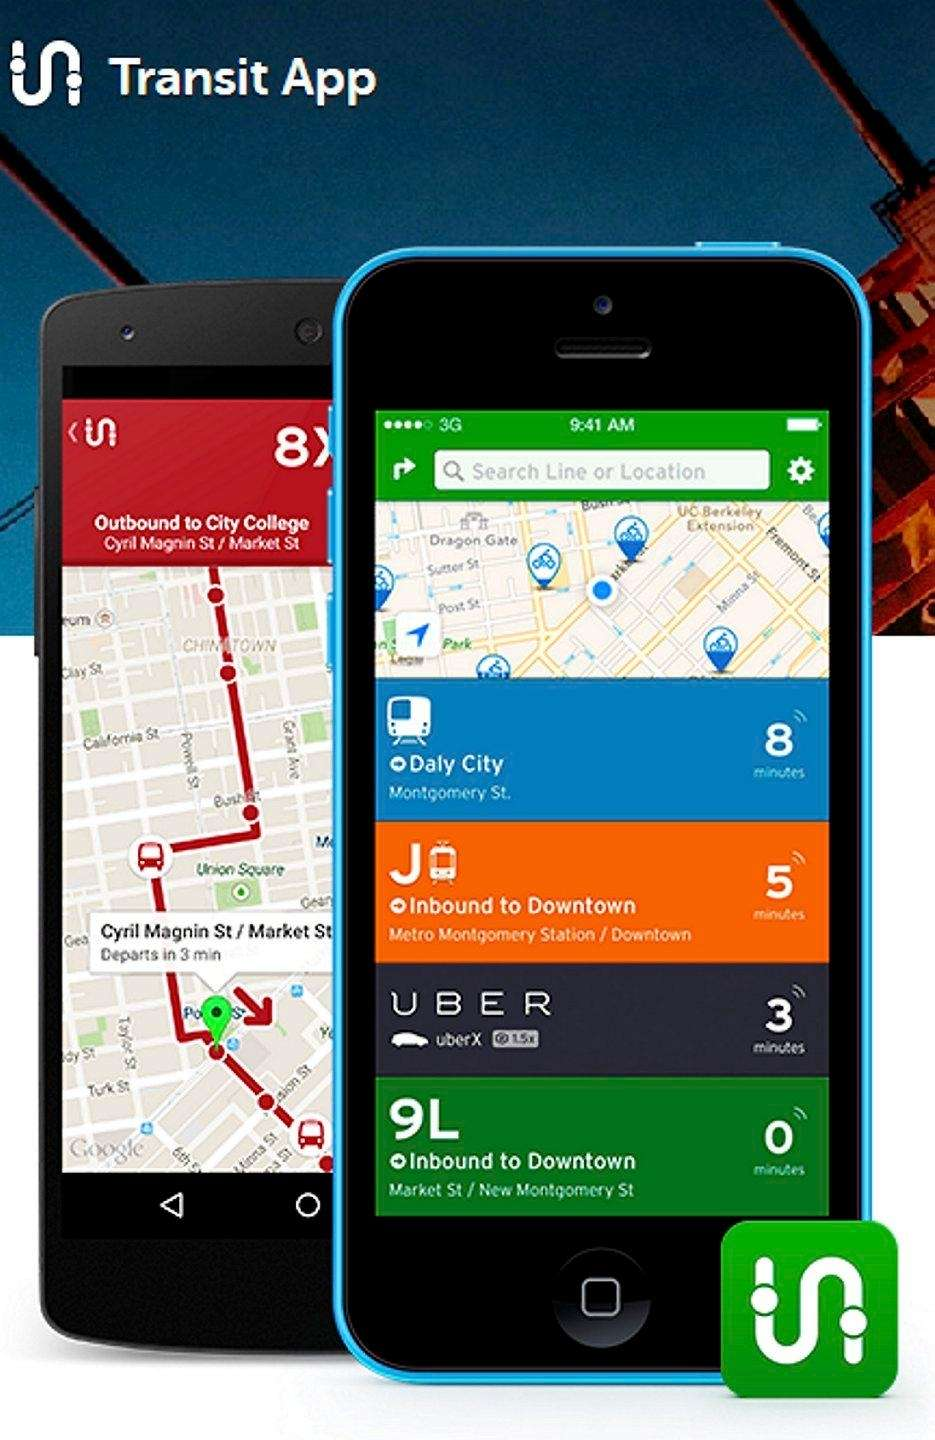 NAME Transit App WHAT IT DOES Tells you